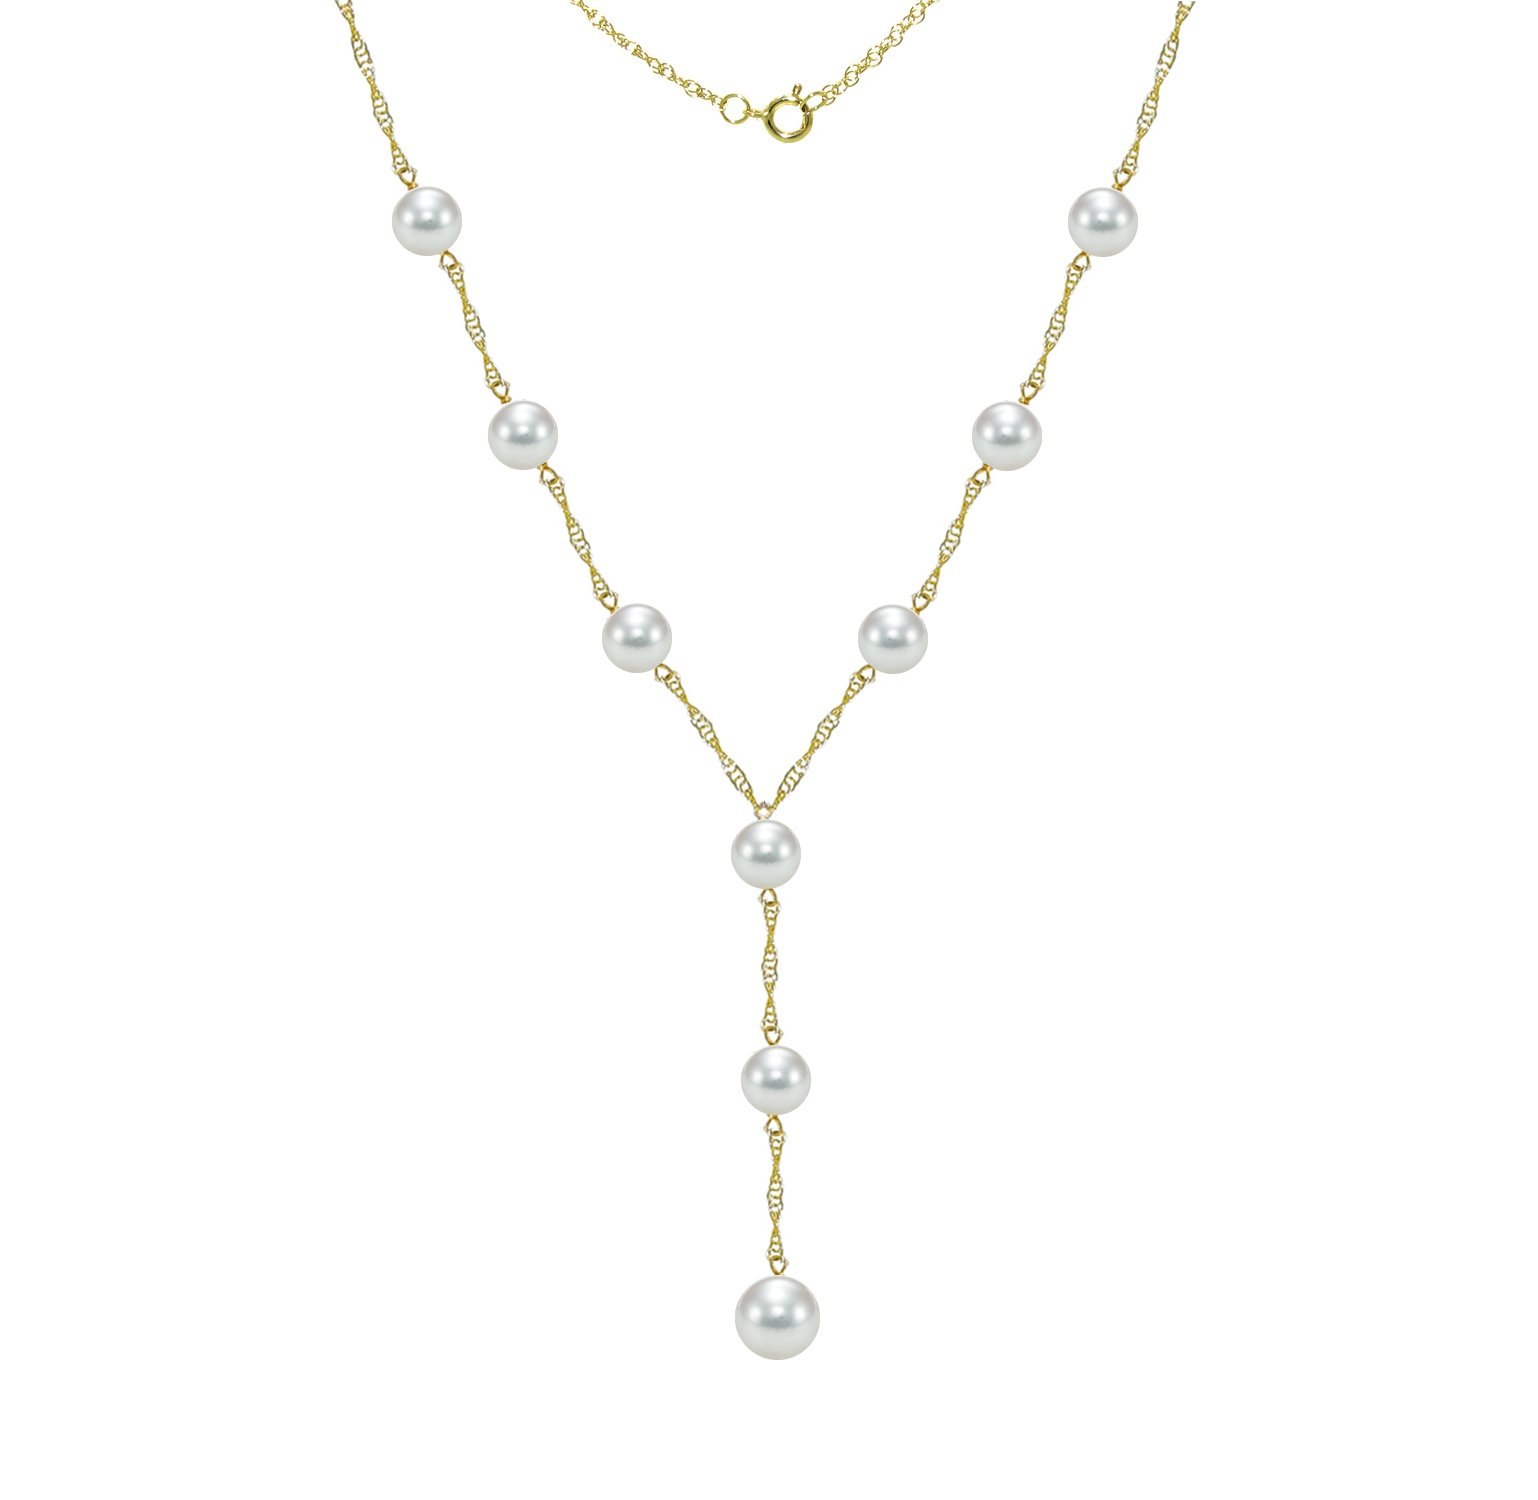 Lariat Tin Cup Station Gold Chain Necklace Cultured Saltwater White Akoya Pearl Jewelry for Women